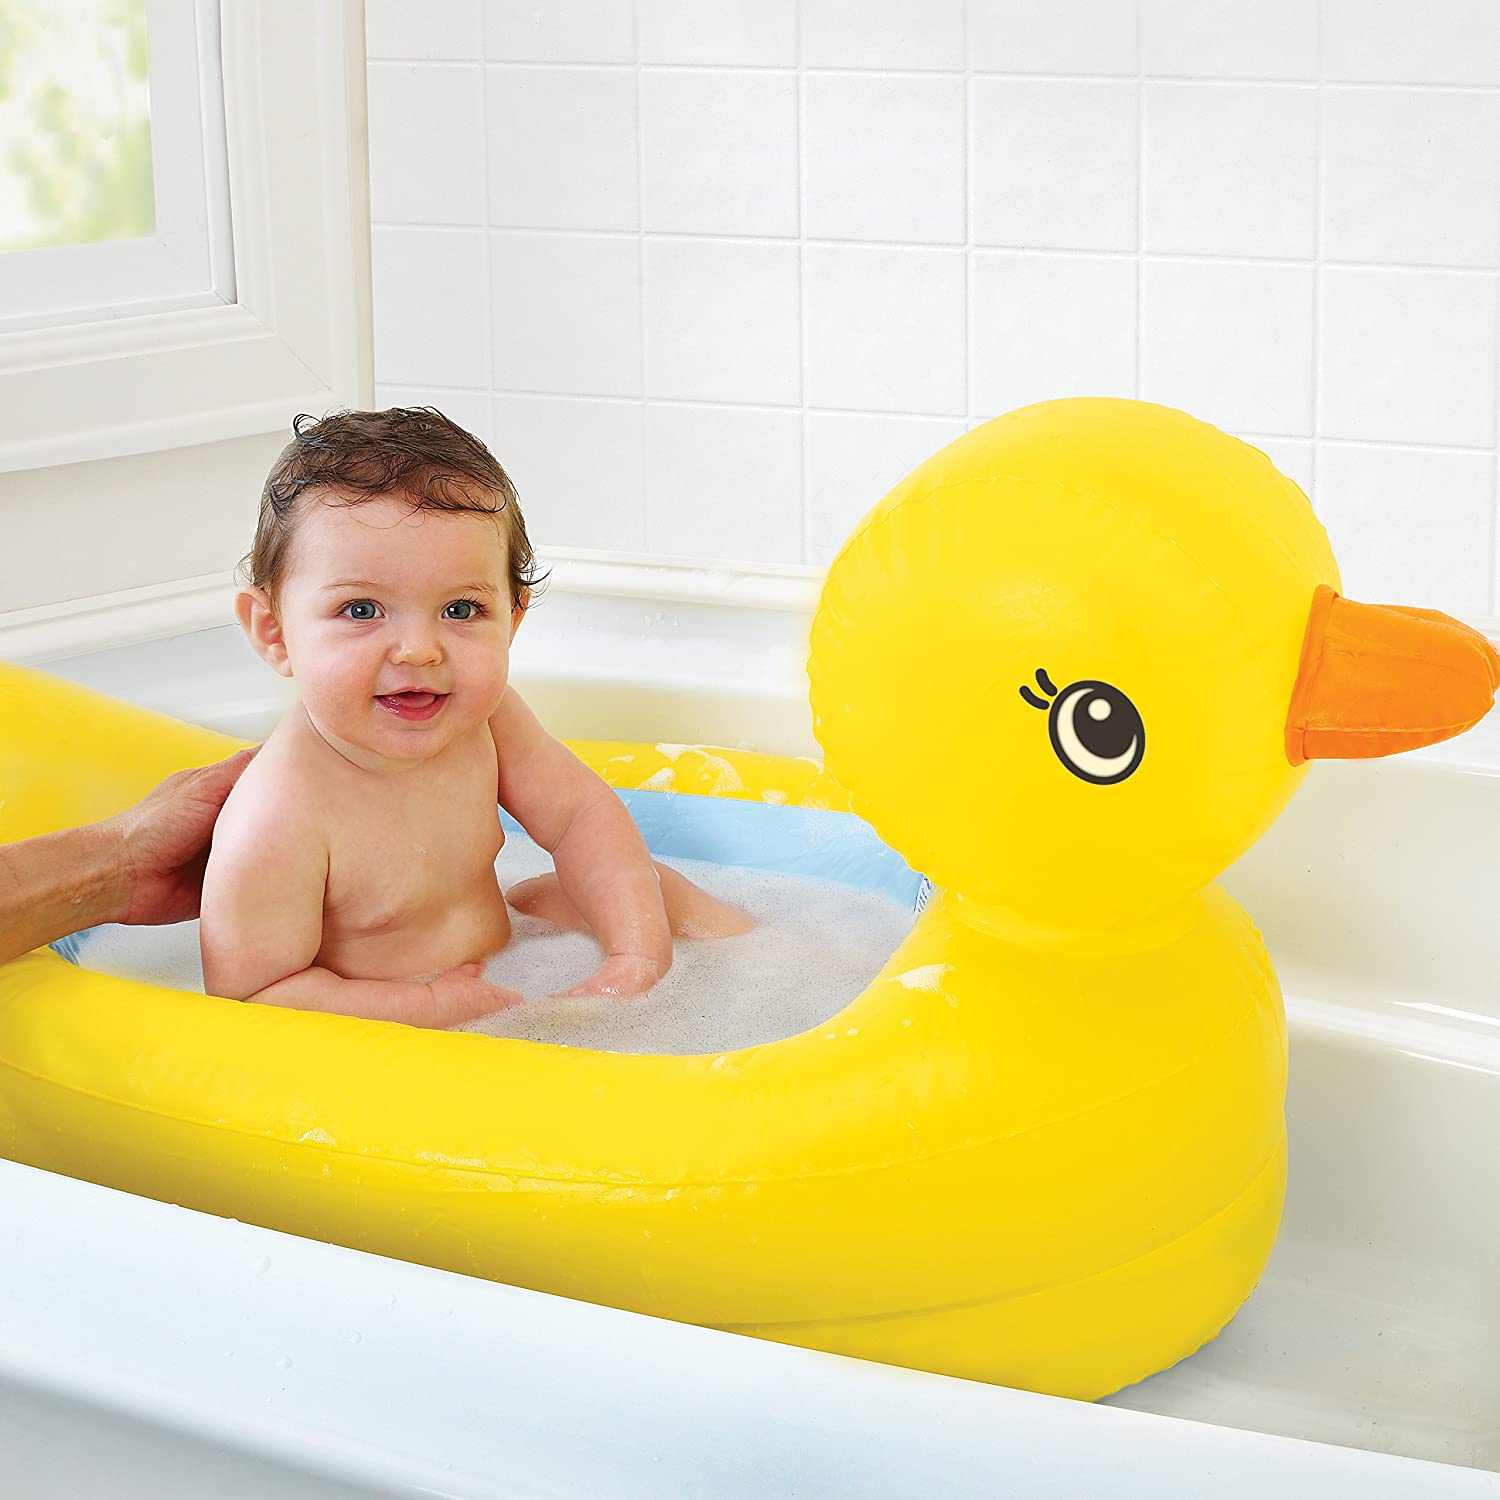 Top 10 Best Baby Inflatable Bath Tubs for Travel 2018-2019 on ...